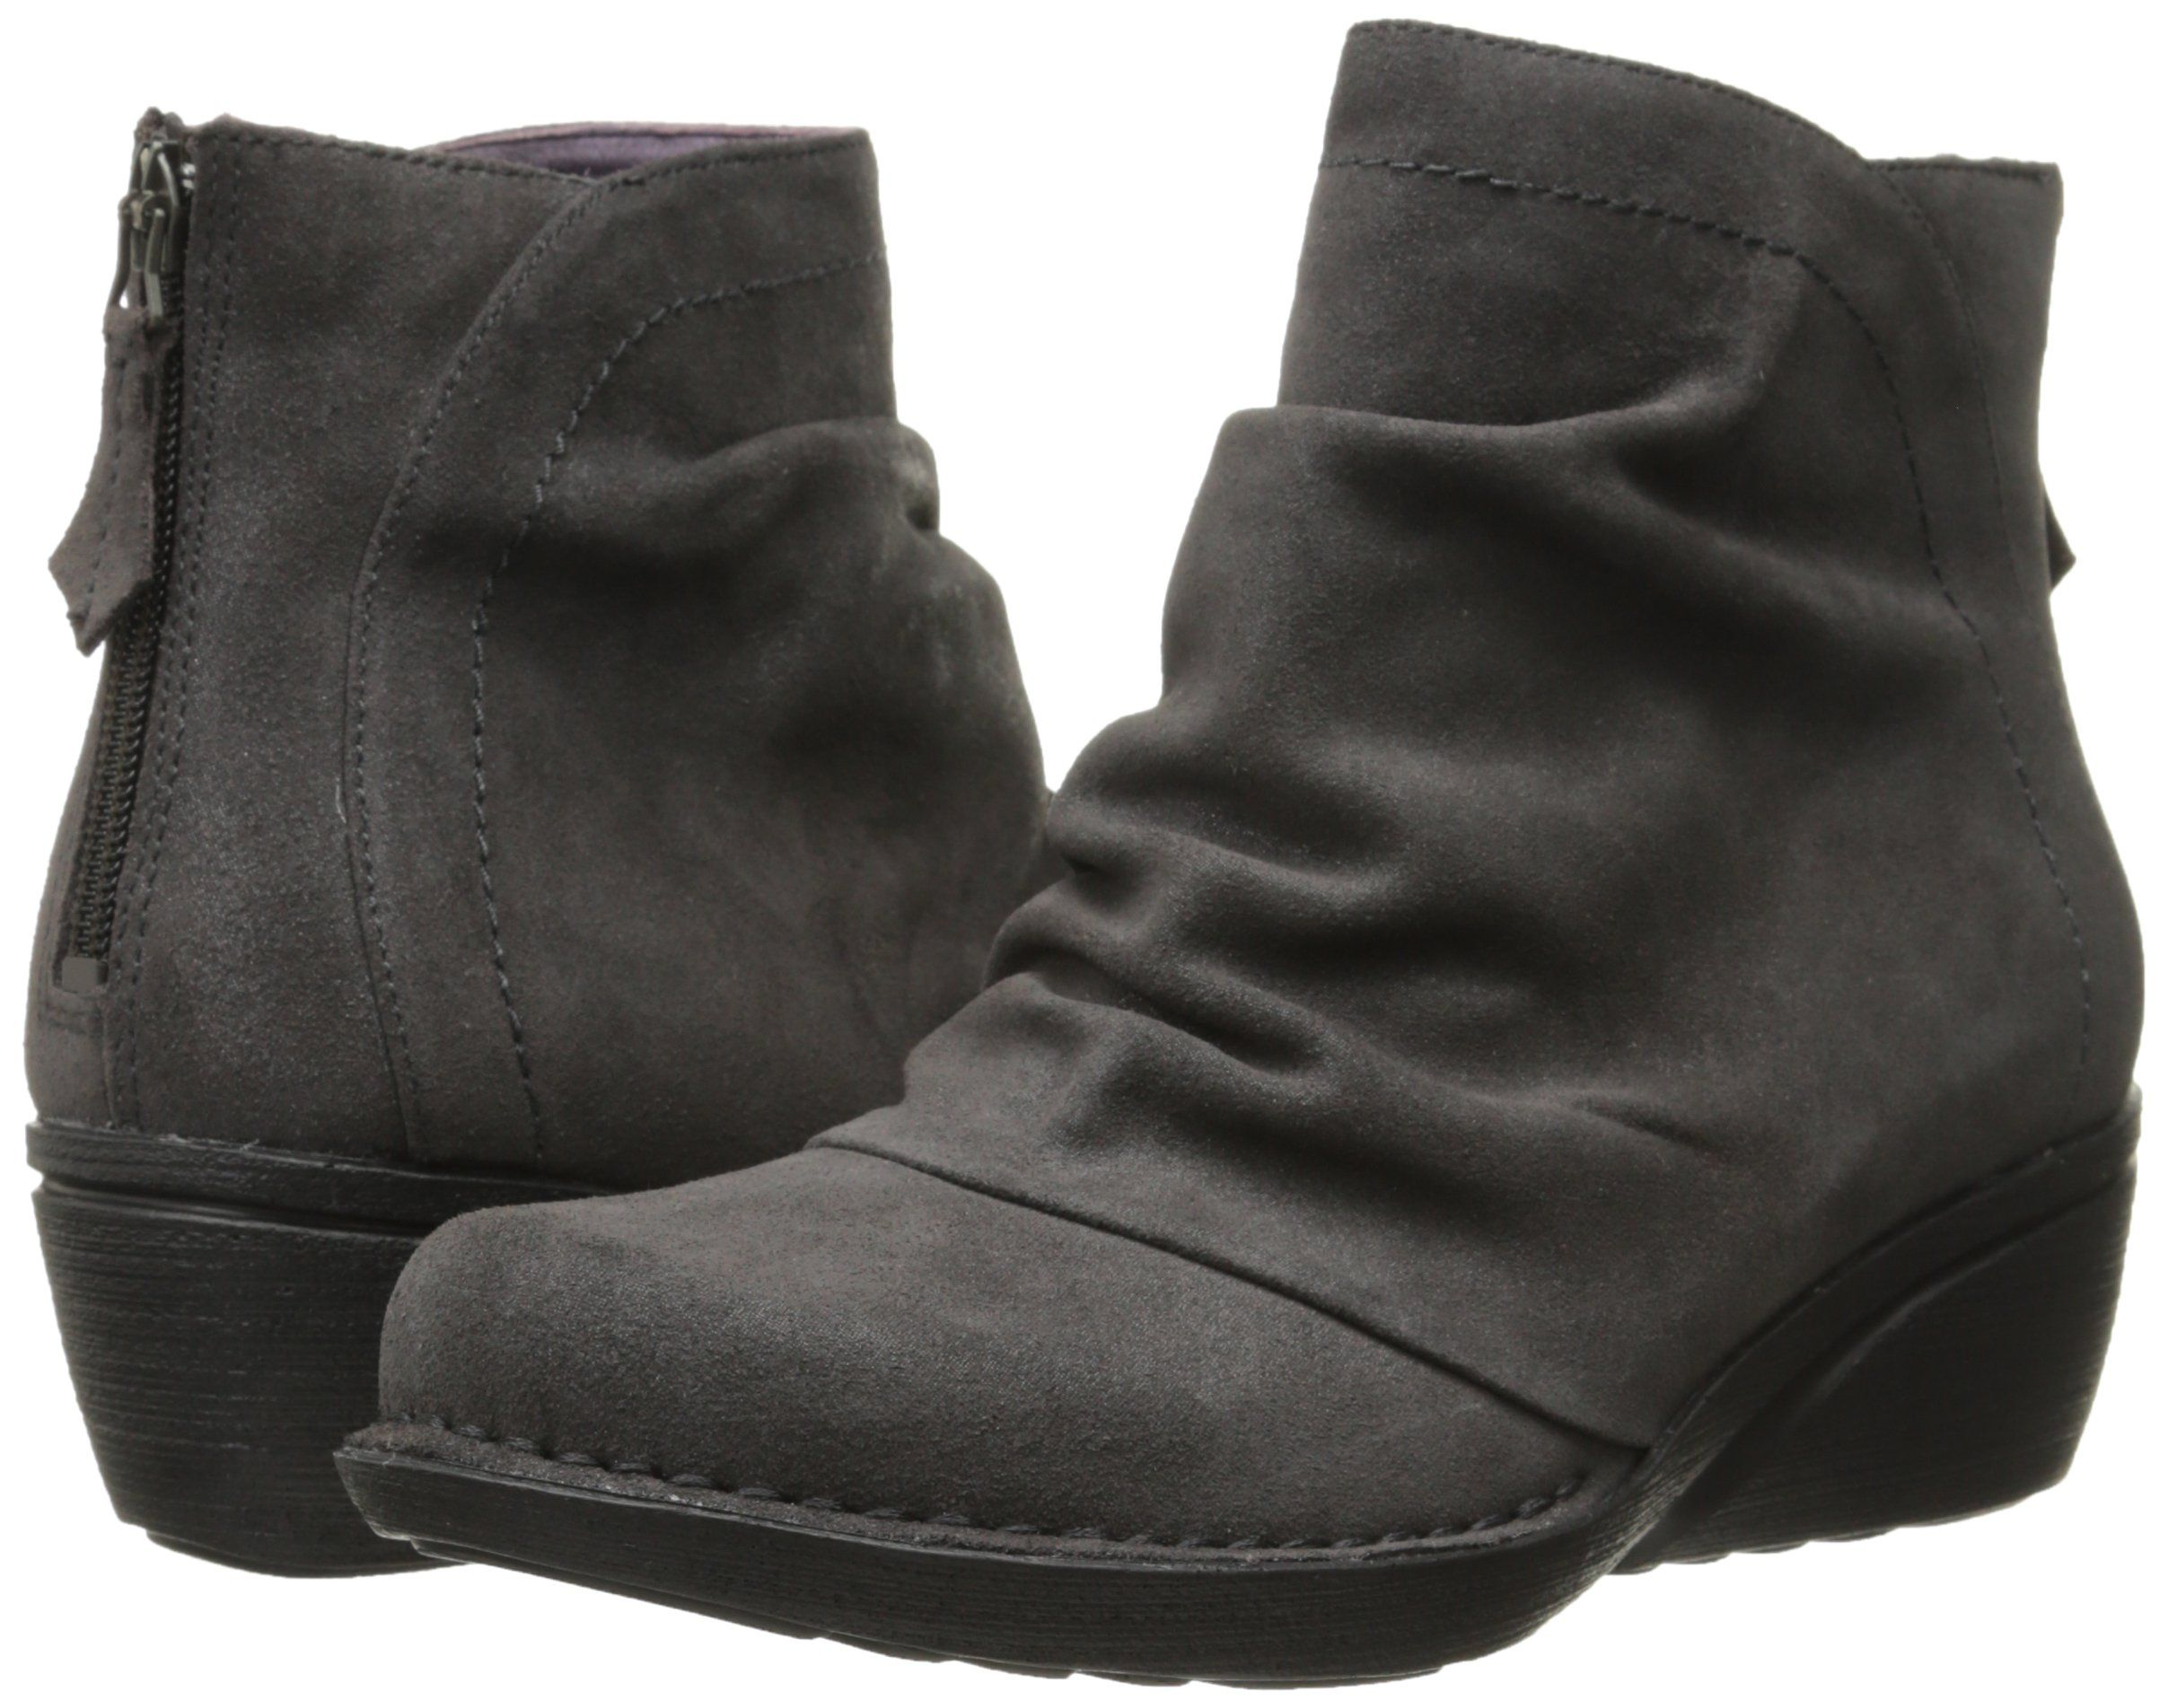 fashion women cute best cheap comforter booties autumn boots bucks your walking style fall for comfortable boot